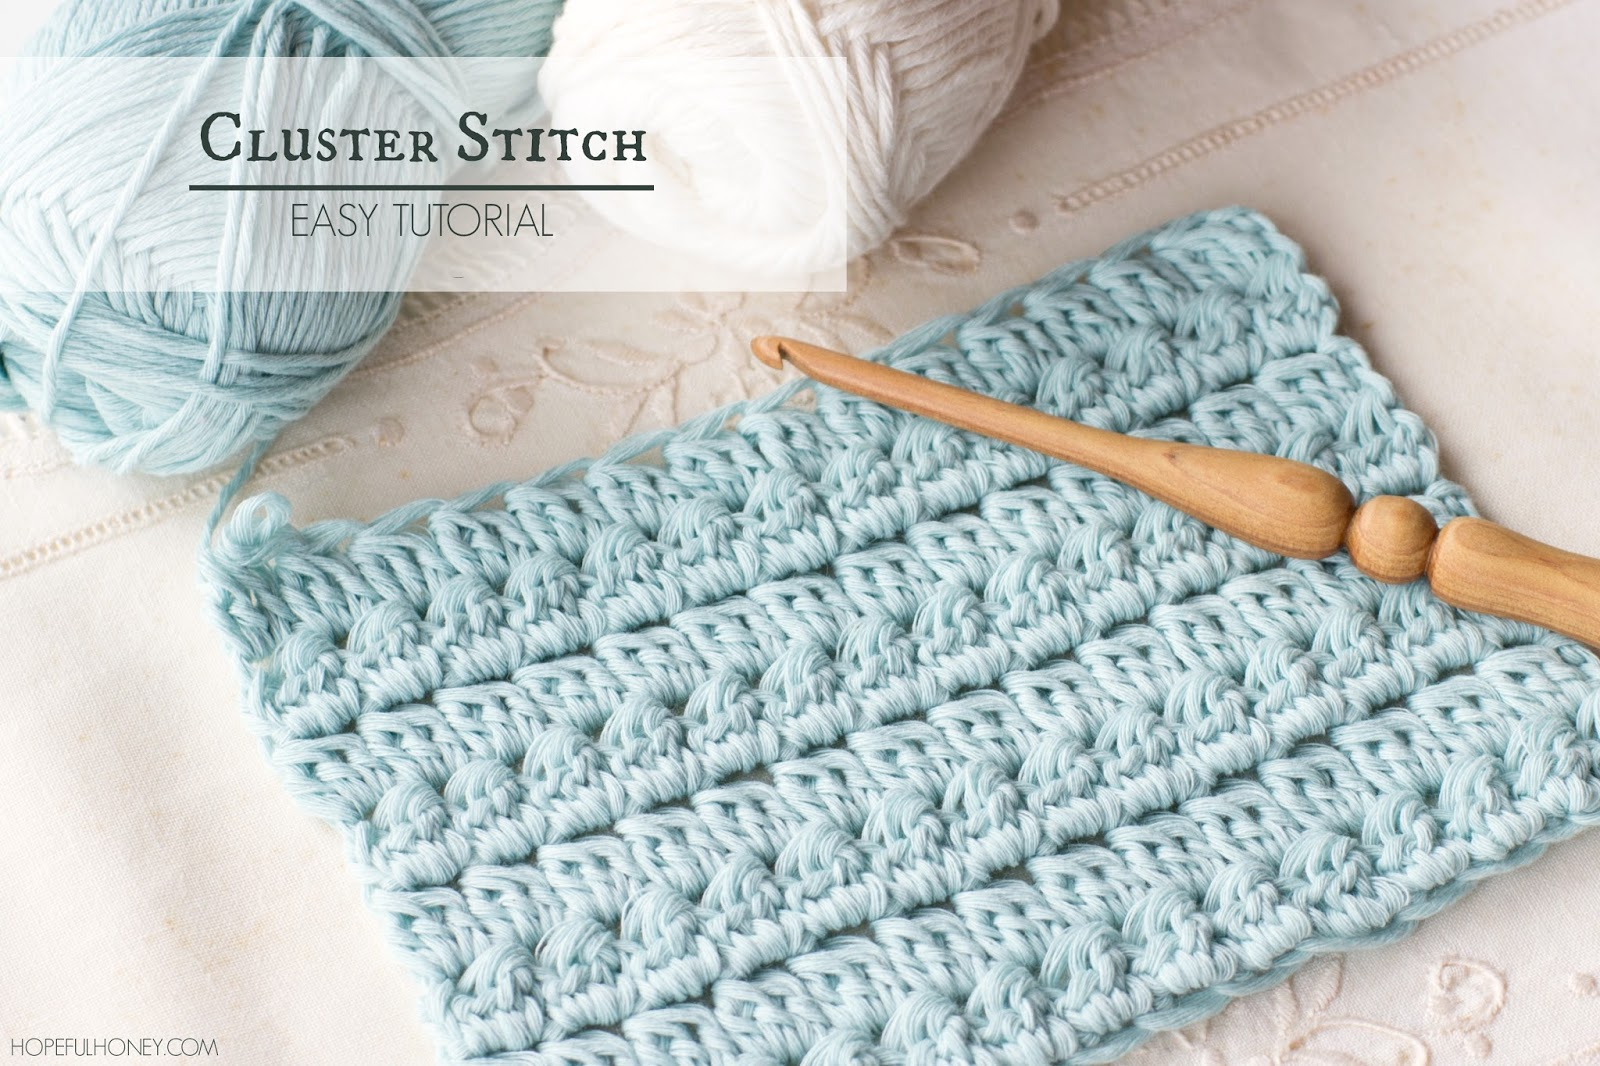 ... , Crochet, Create: How To: Crochet The Cluster Stitch - Easy Tutorial